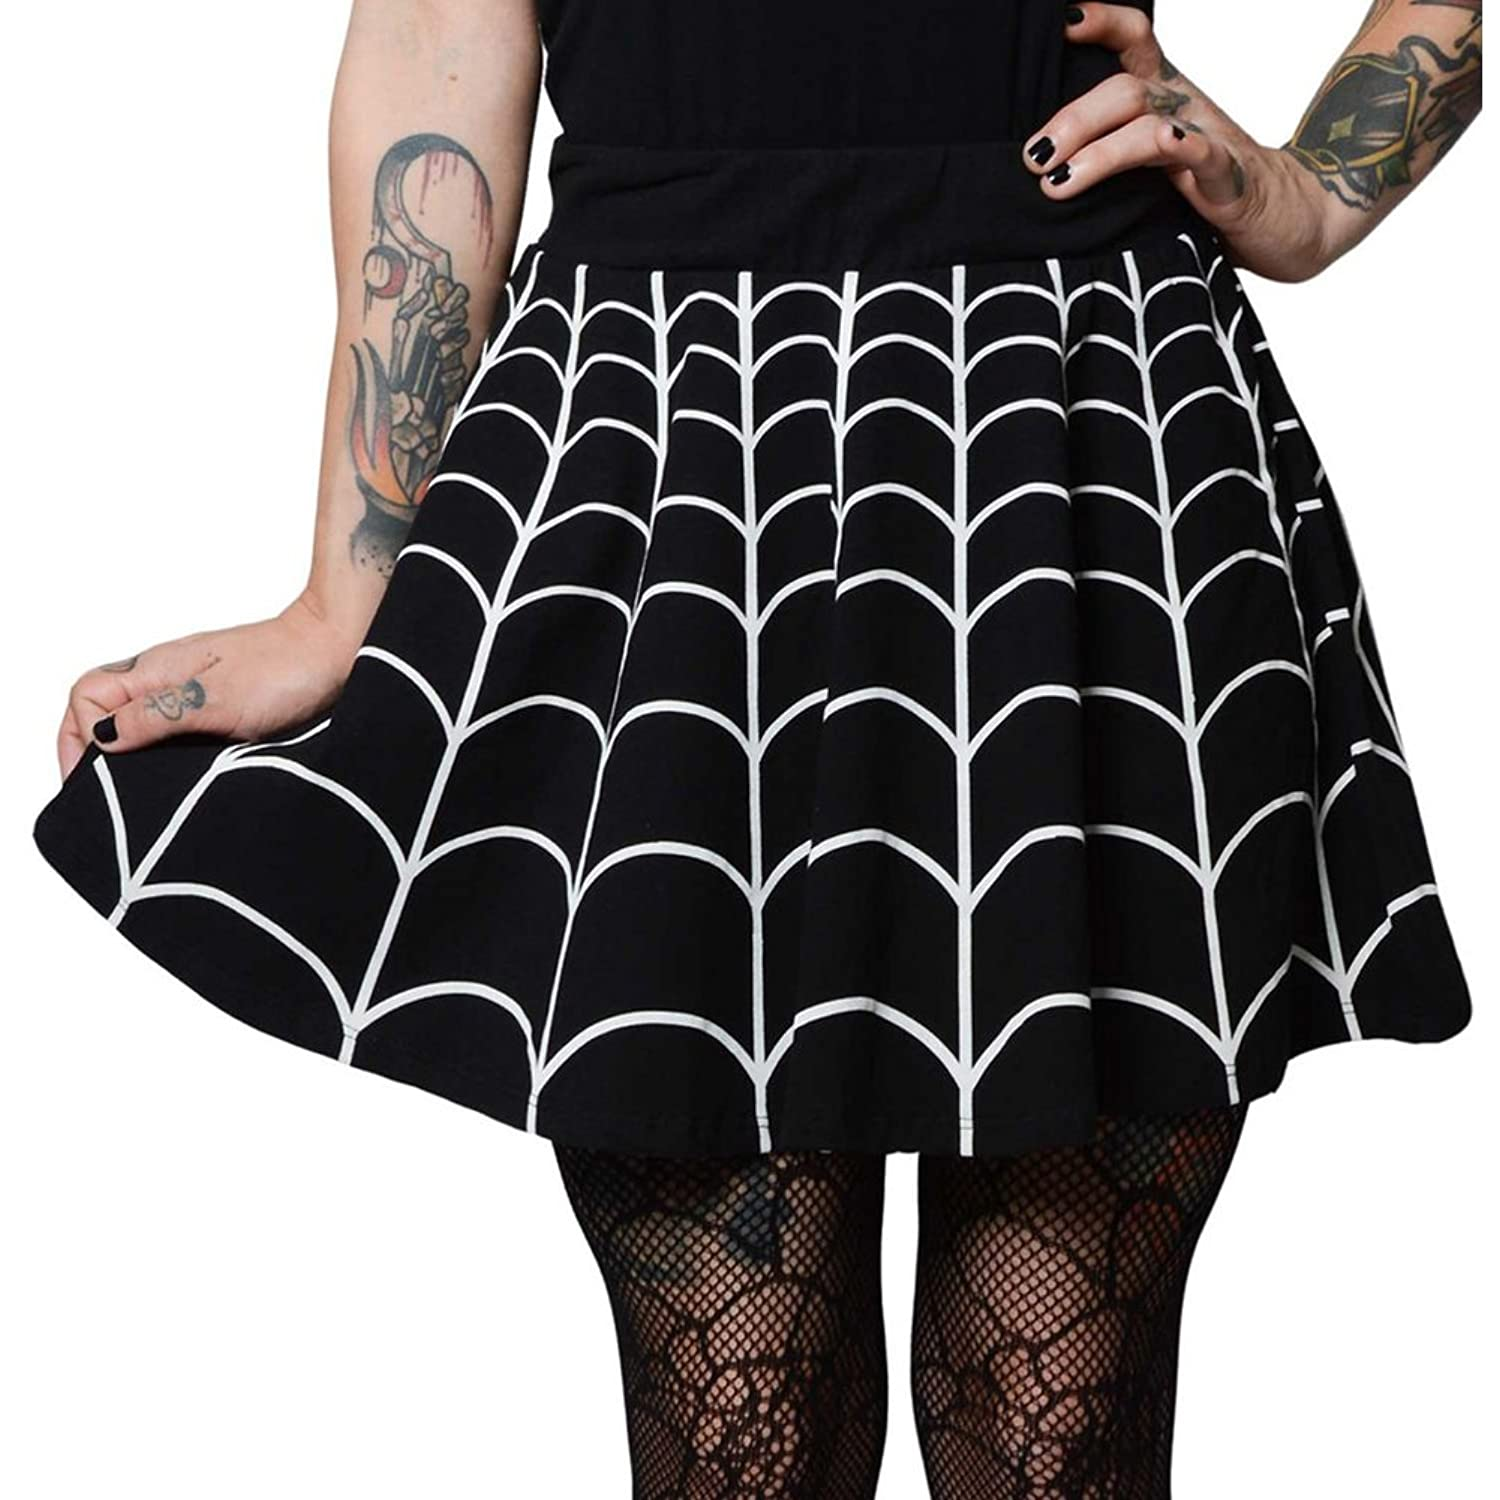 Women's Kreepsville 666 Web White Skater Skirt